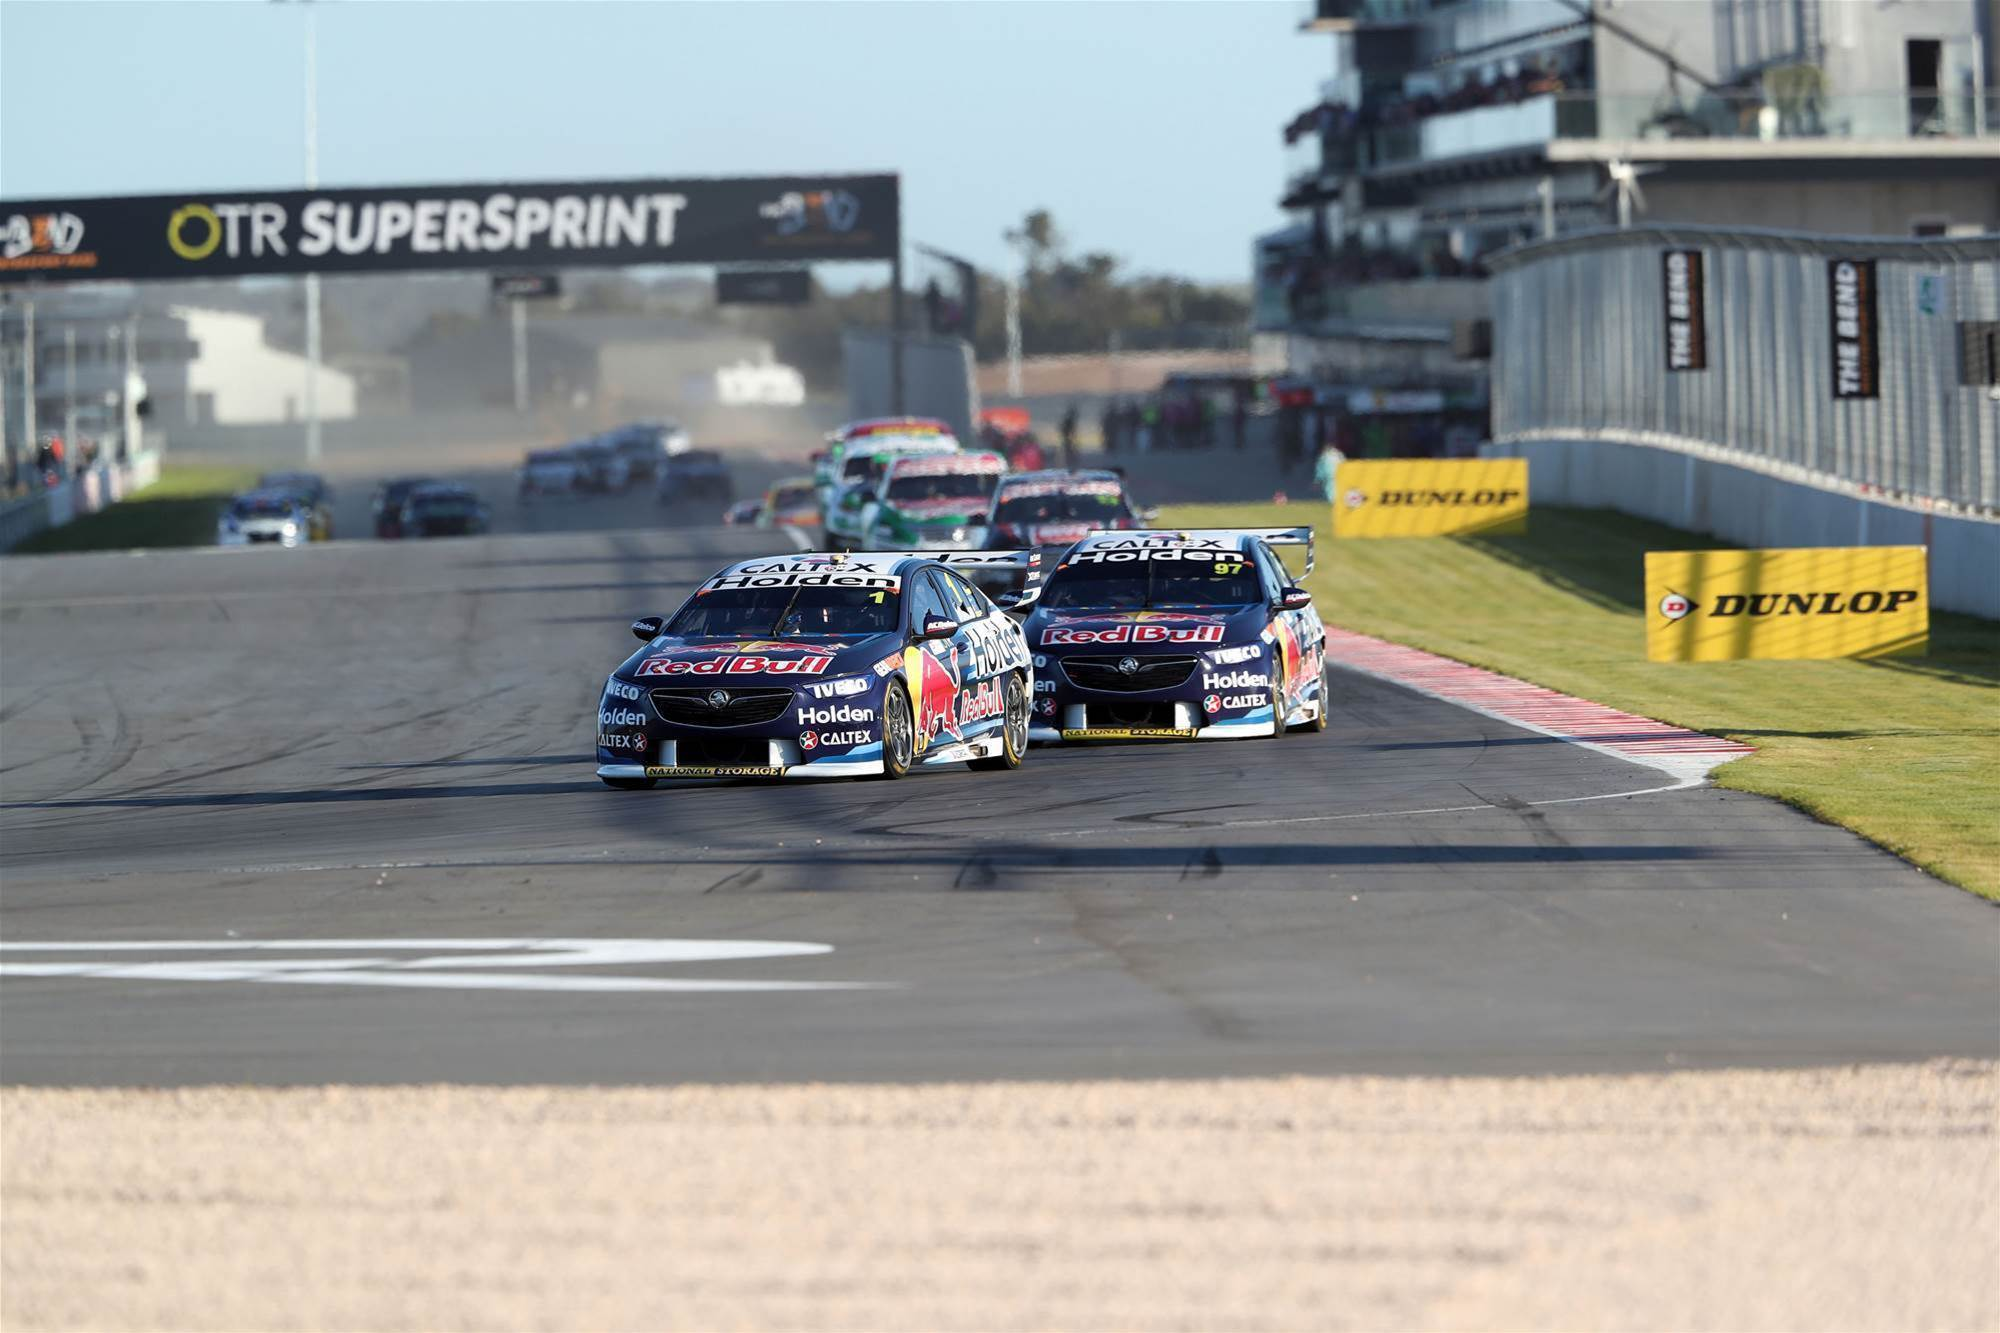 Whincup wins as van Gisbergen takes Supercars series lead